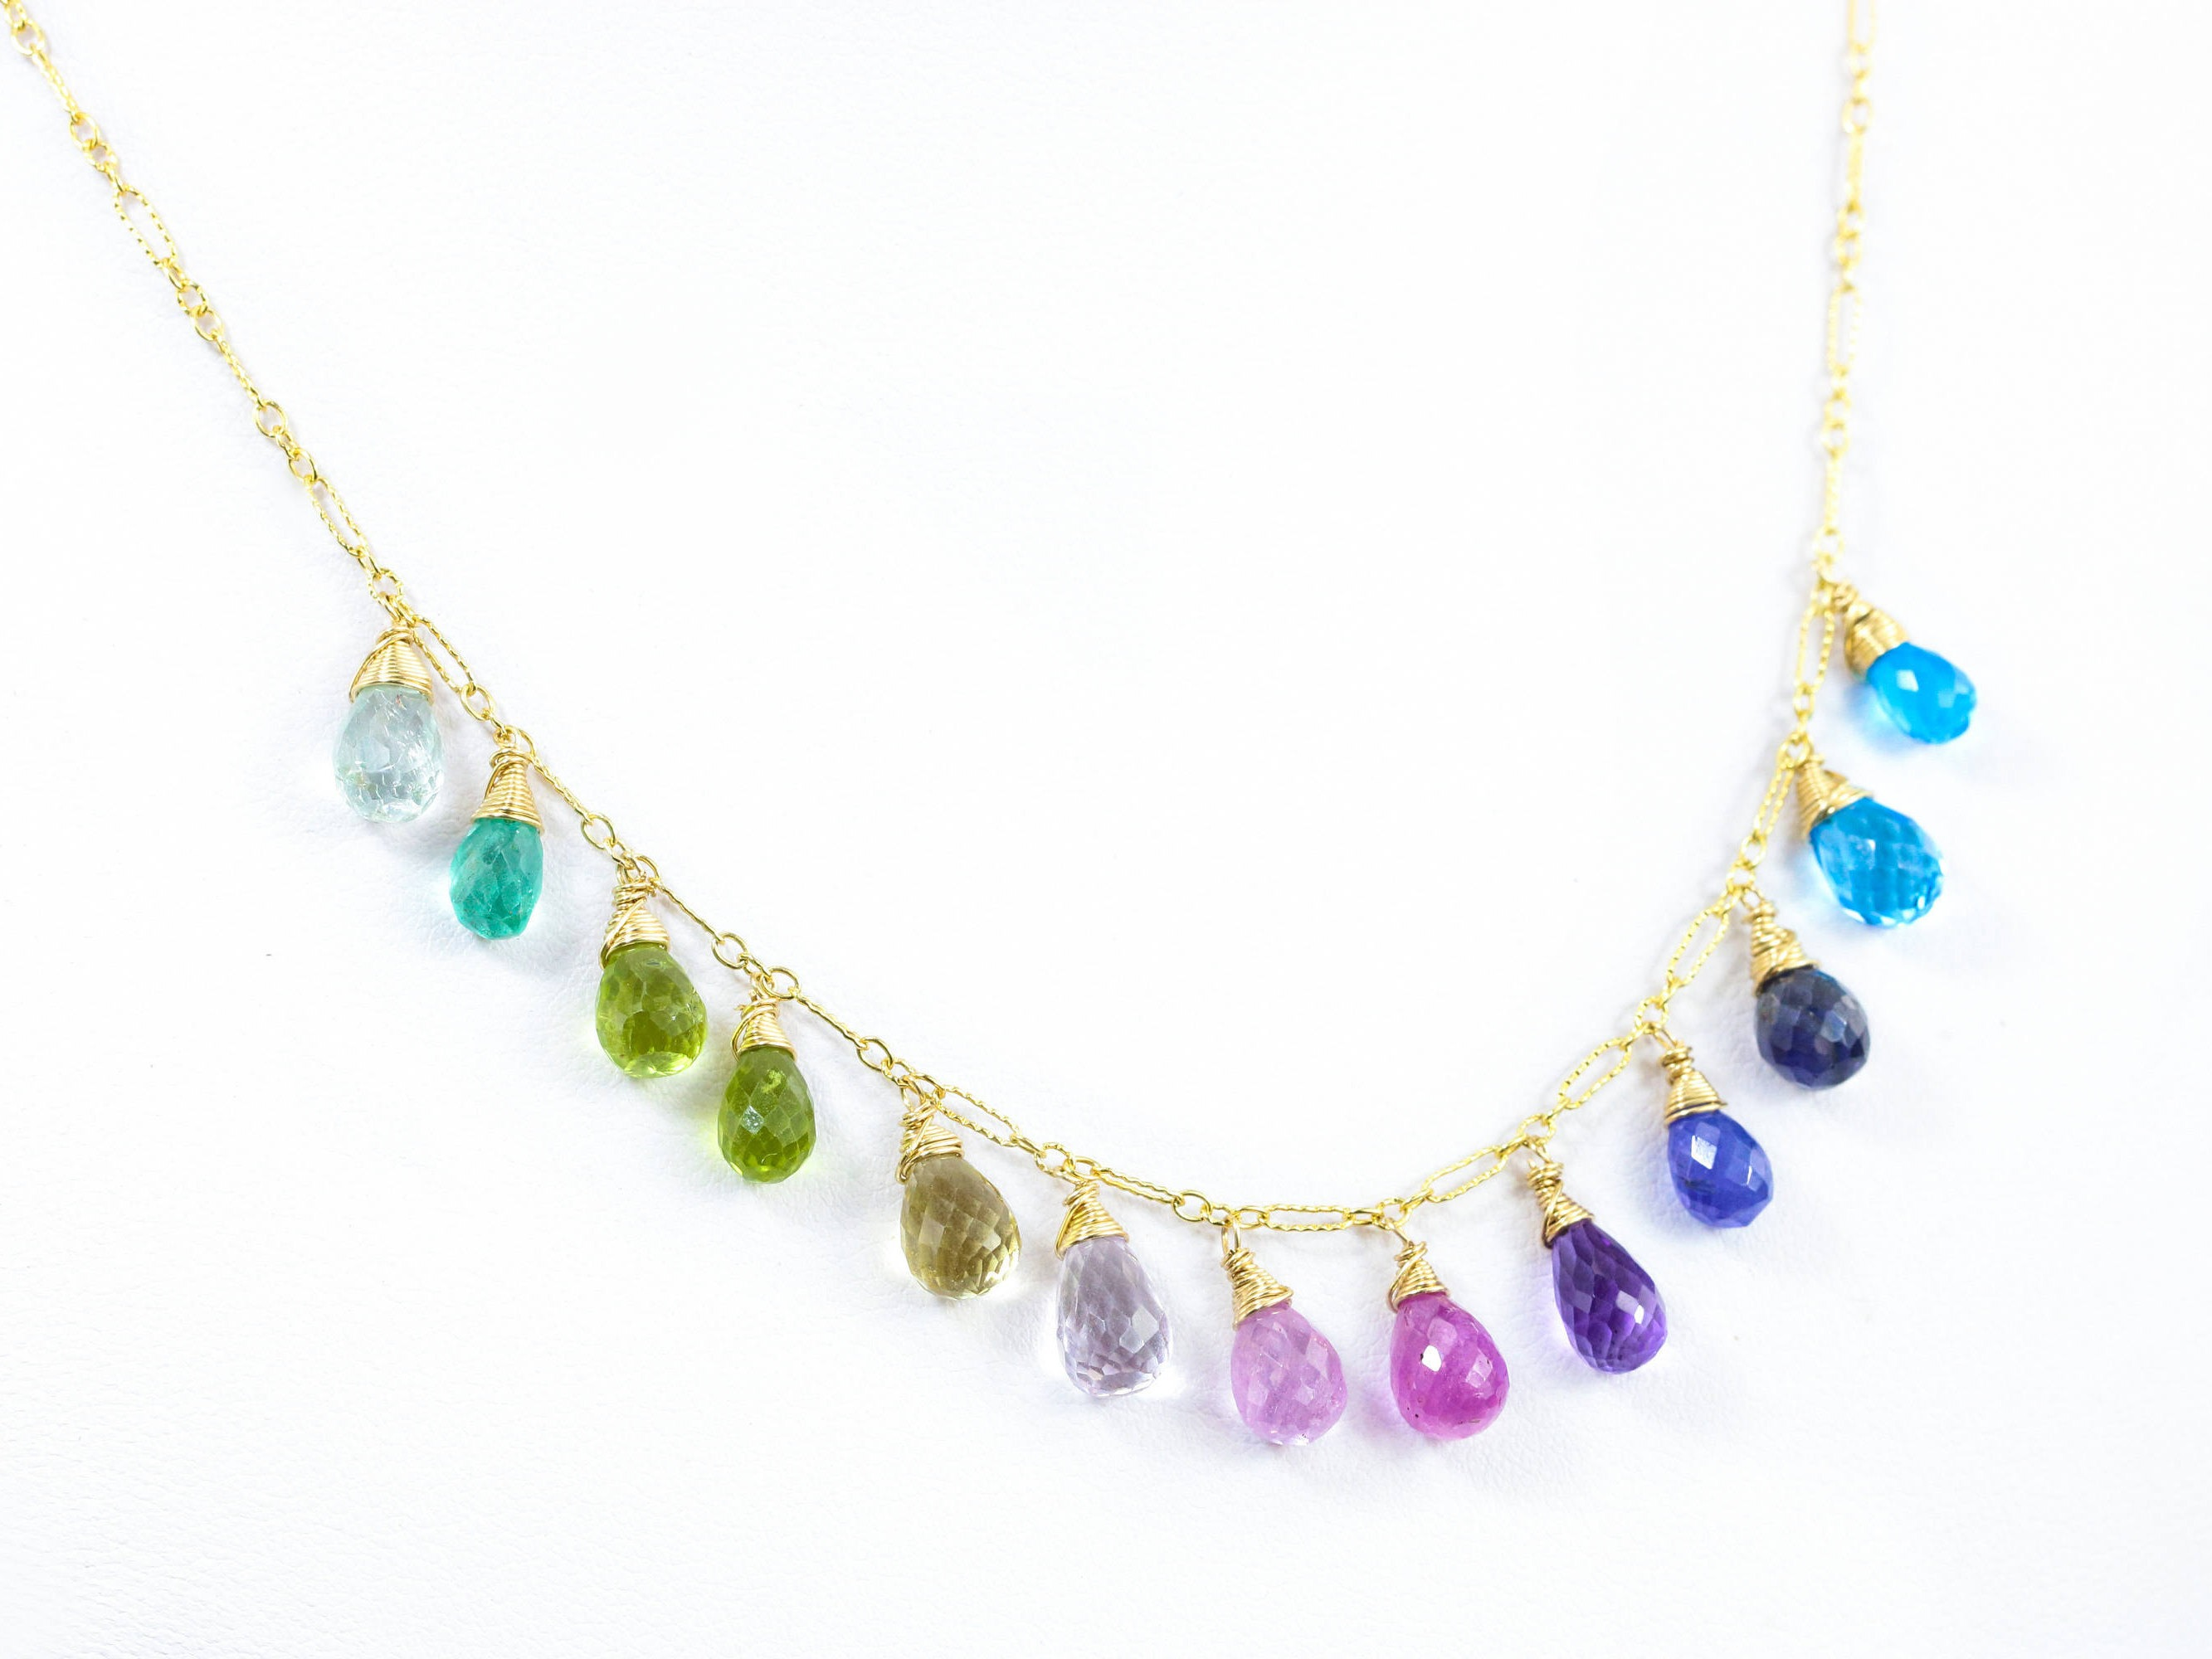 en necklace necklaces pandora heart with rainbow estore pendants